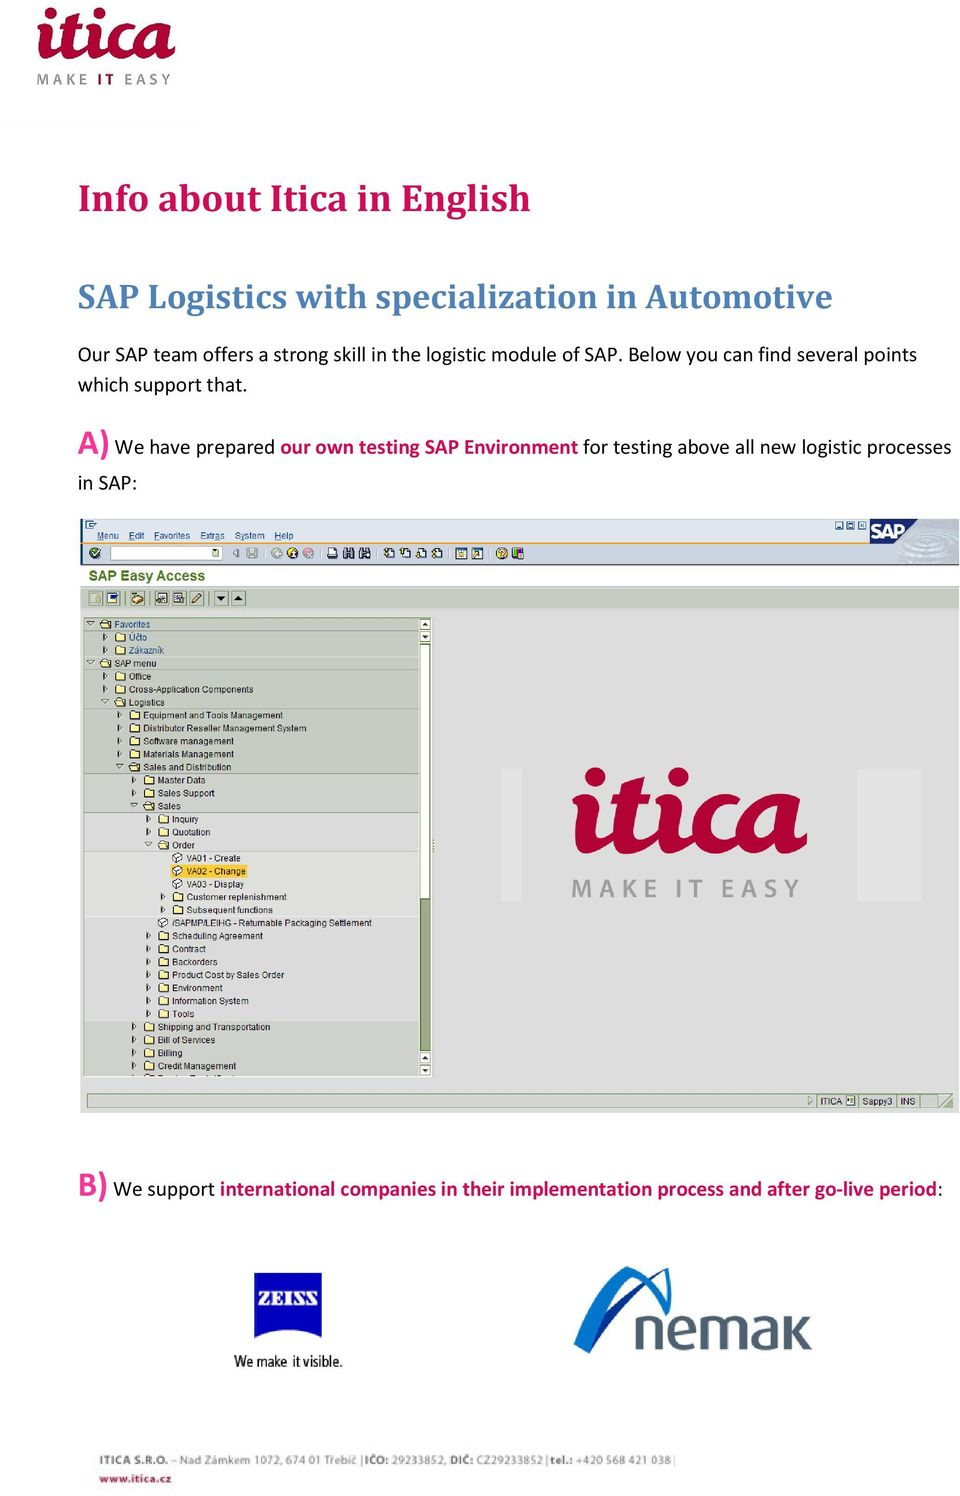 A) We have prepared our own testing SAP Environment for testing above all new logistic processes